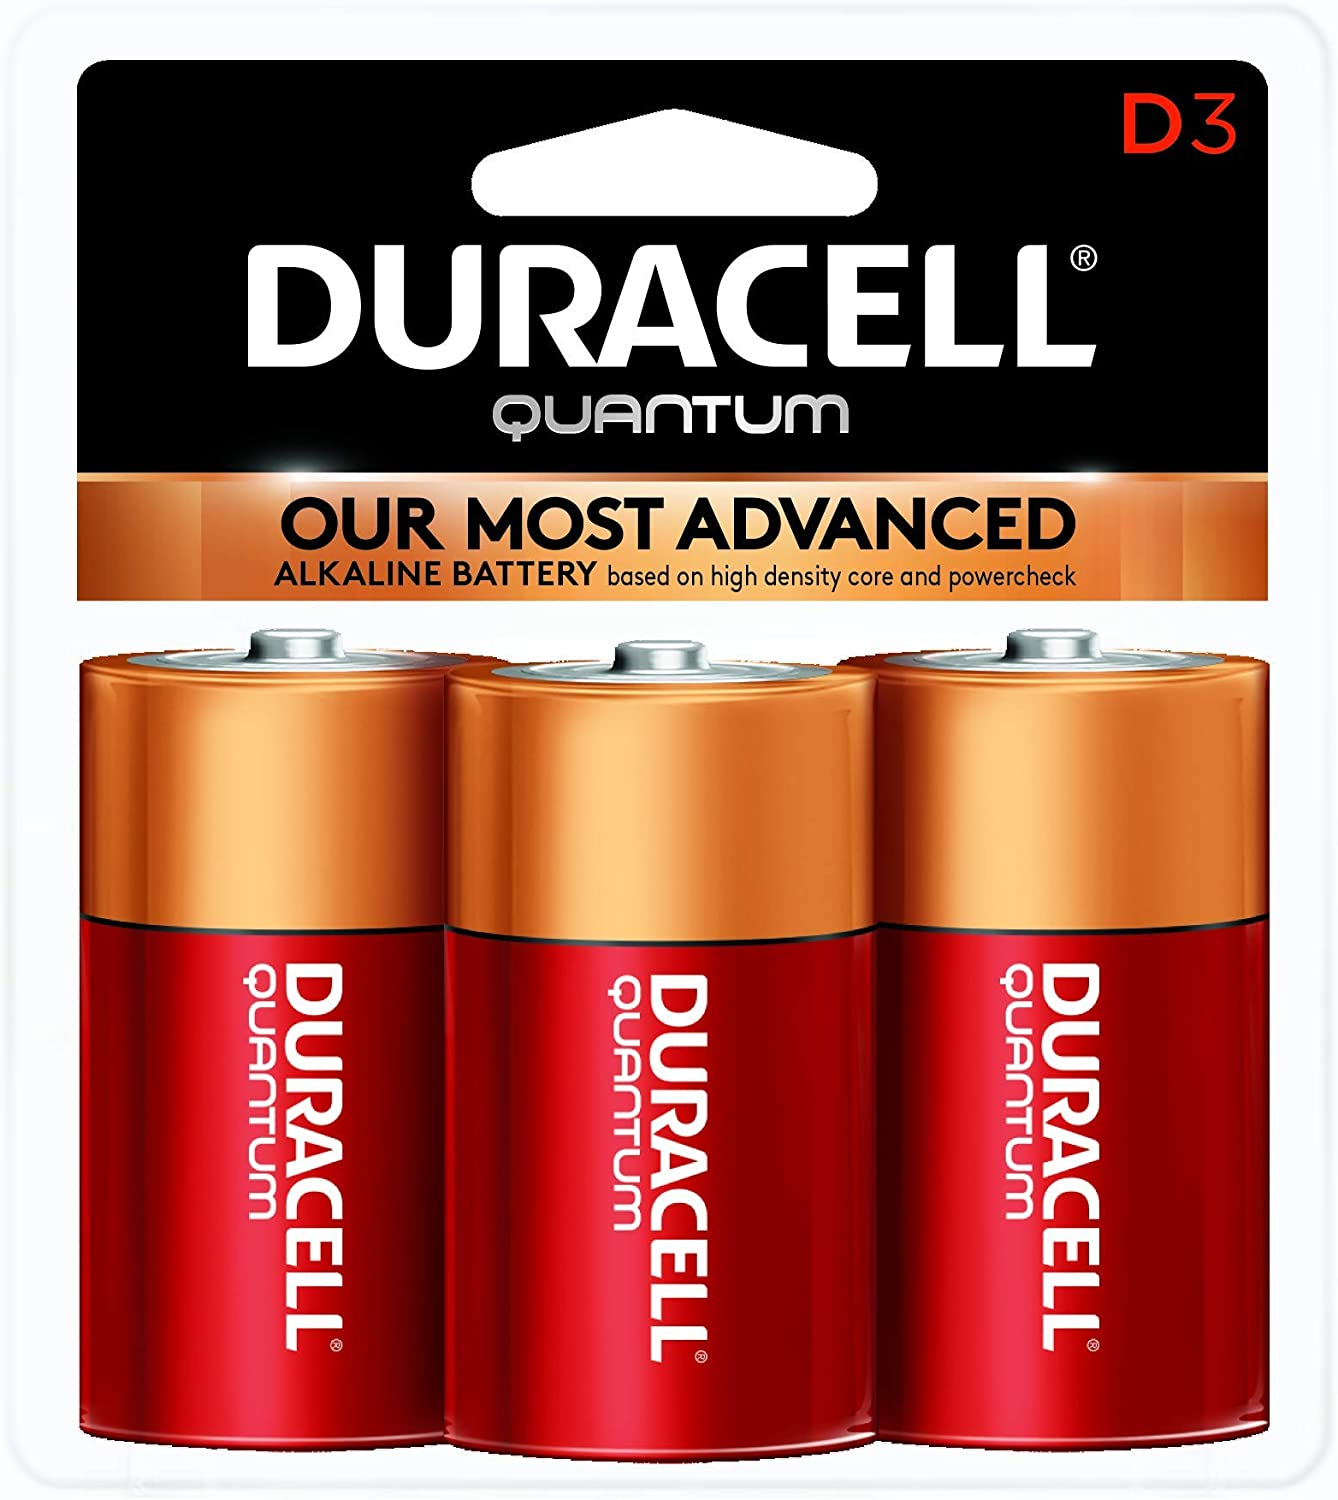 Duracell - Quantum D Alkaline Batteries - long lasting, all-purpose D battery for household and business - 3 count